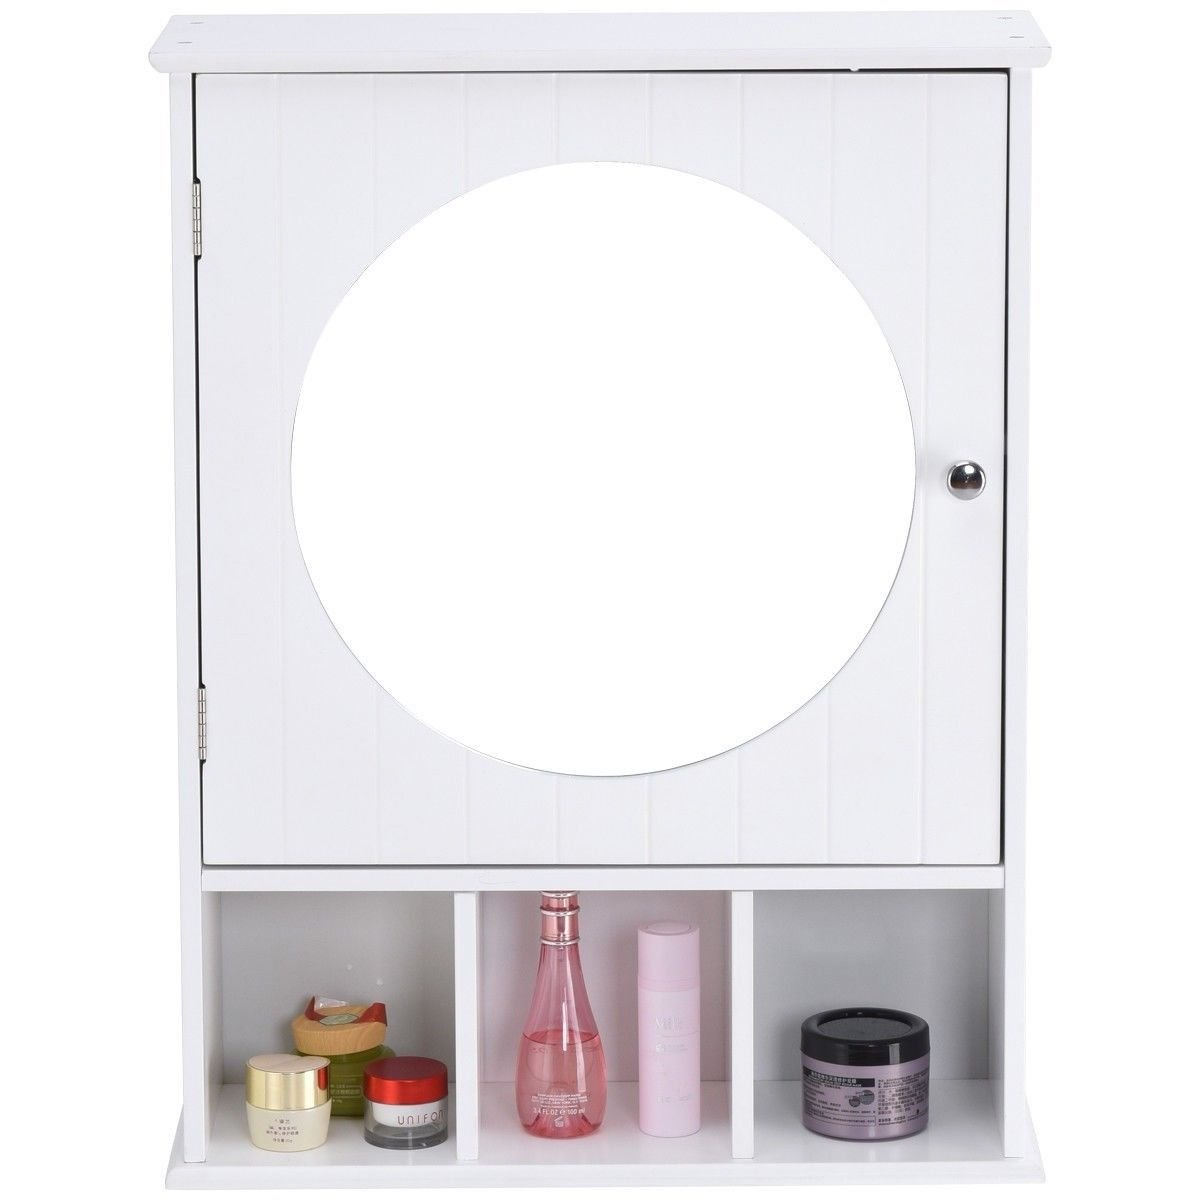 Moon_Daughter Bathroom Wall Mount Storage Cabinet Wood Shelf Organizer Over Sink w/Round Mirror